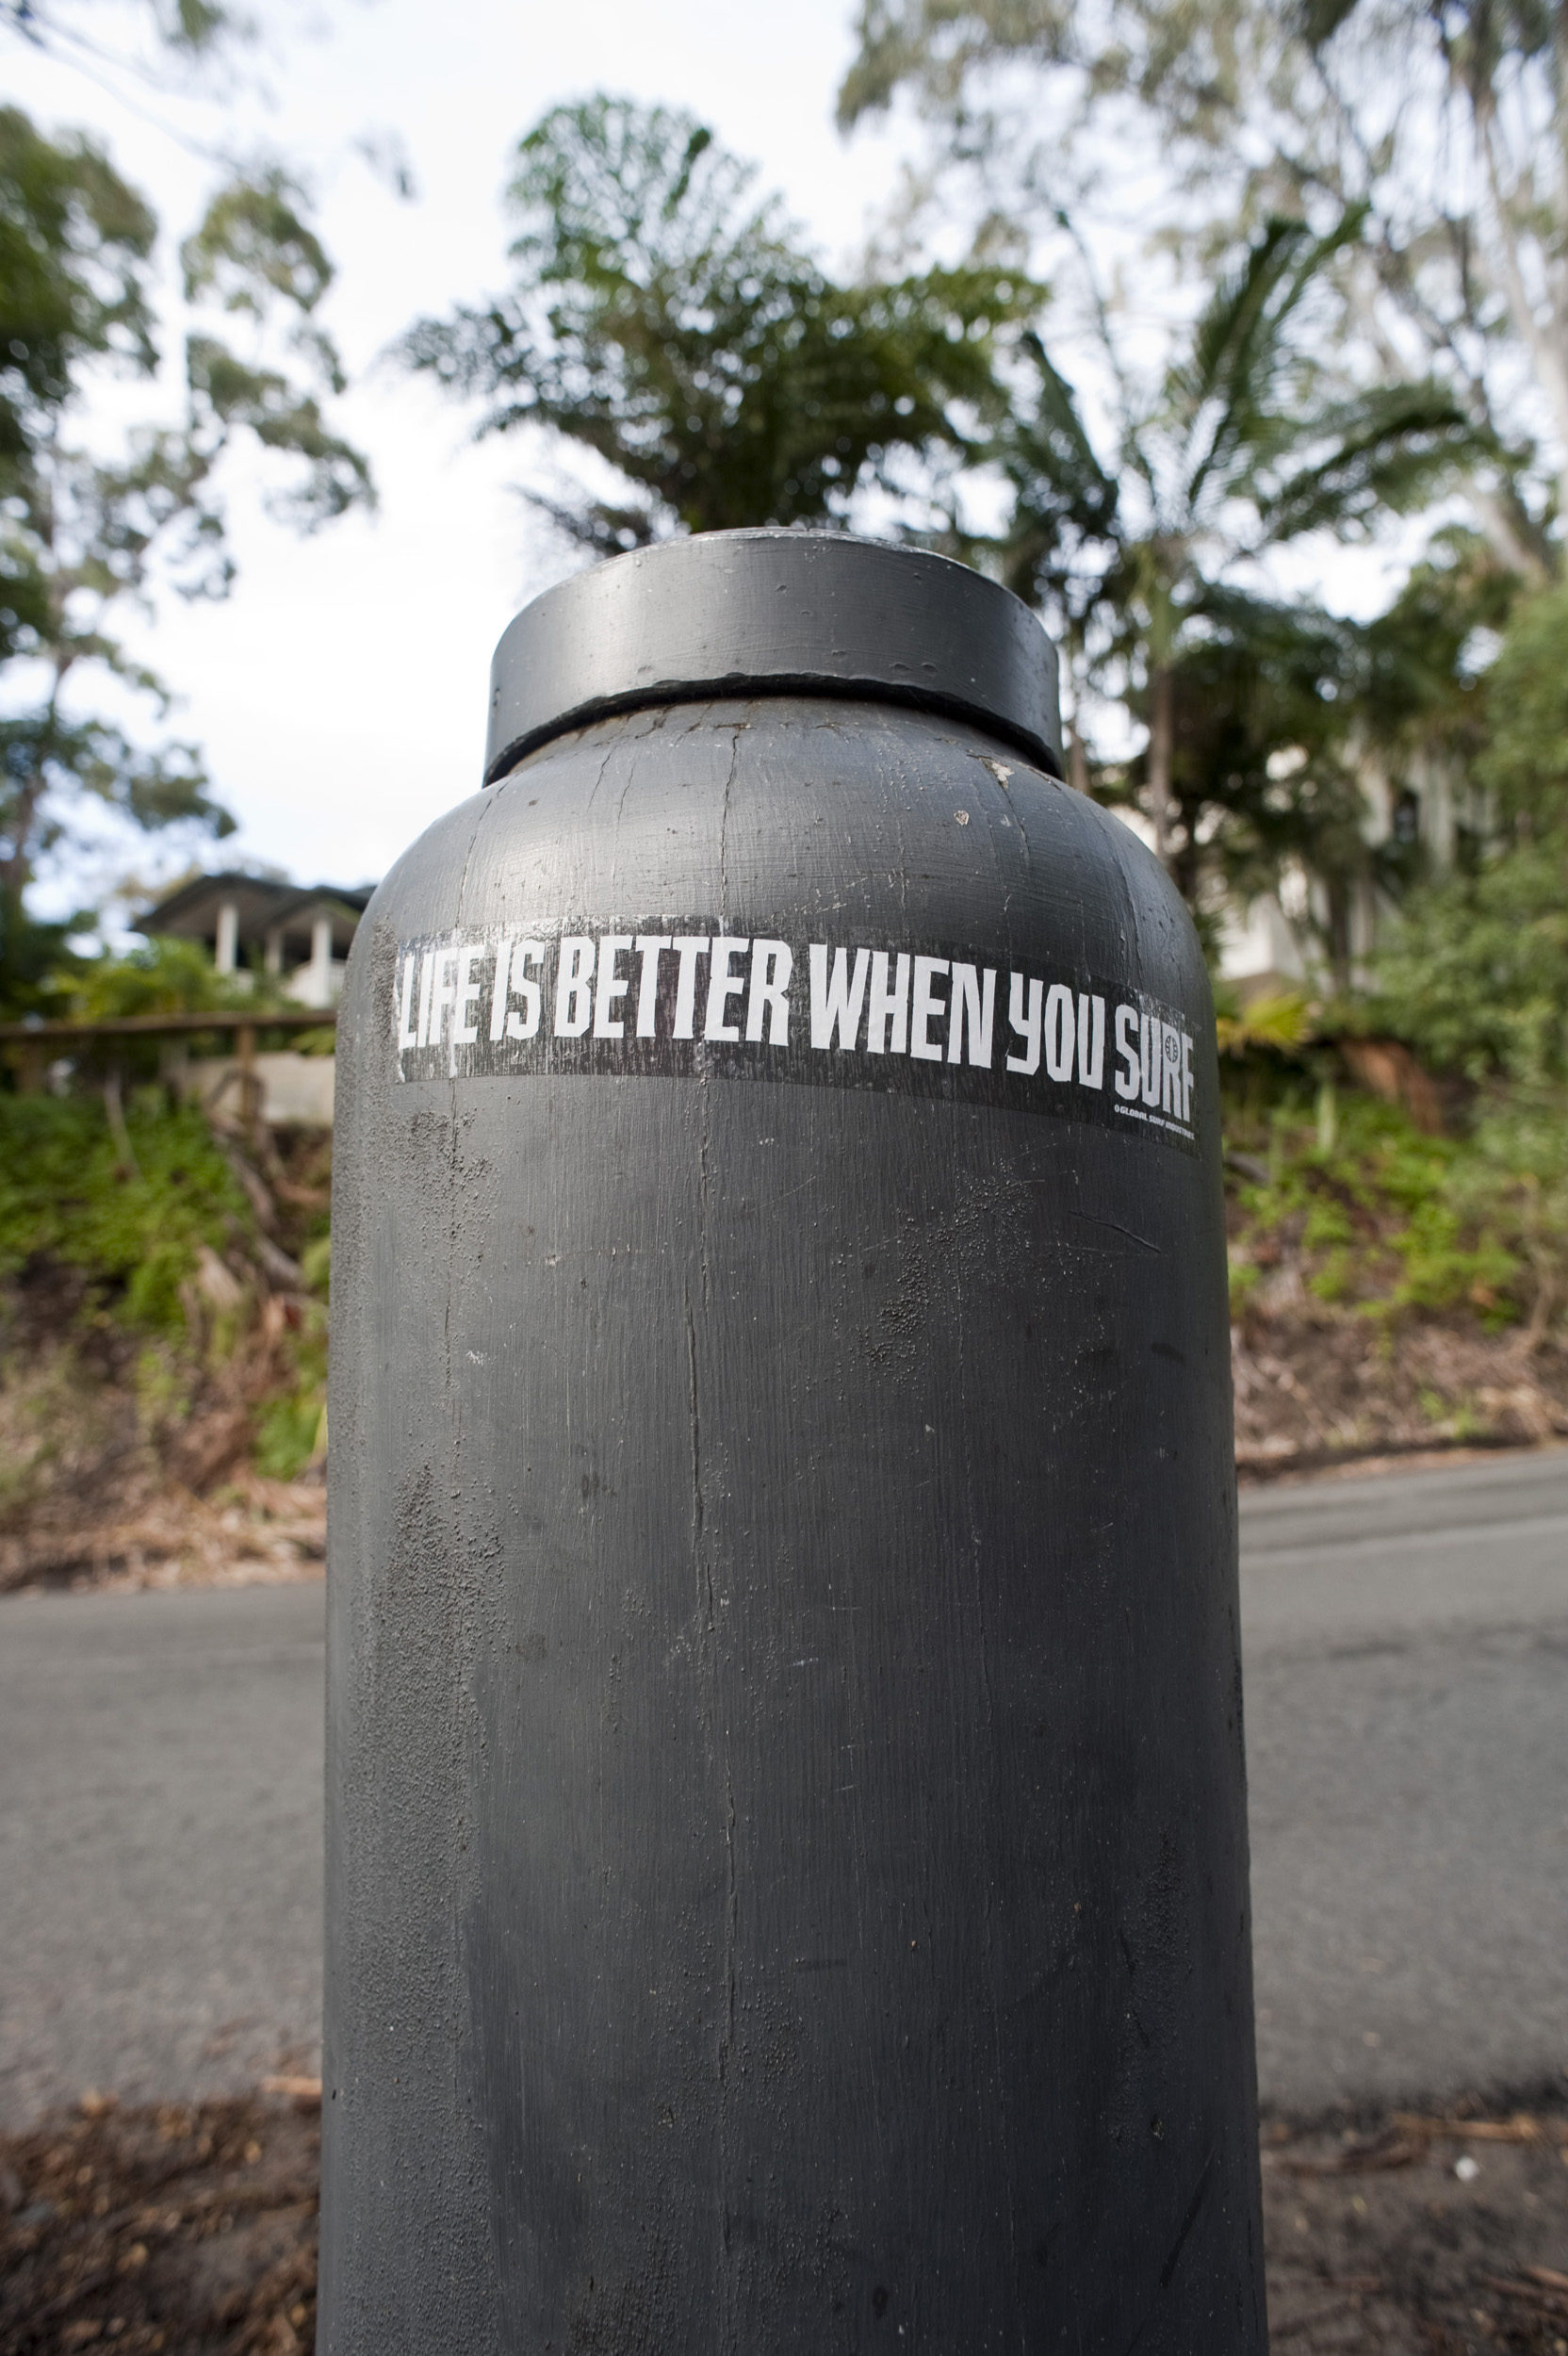 a sticker near a surf beach at noosa with lifes better when your surf written on it